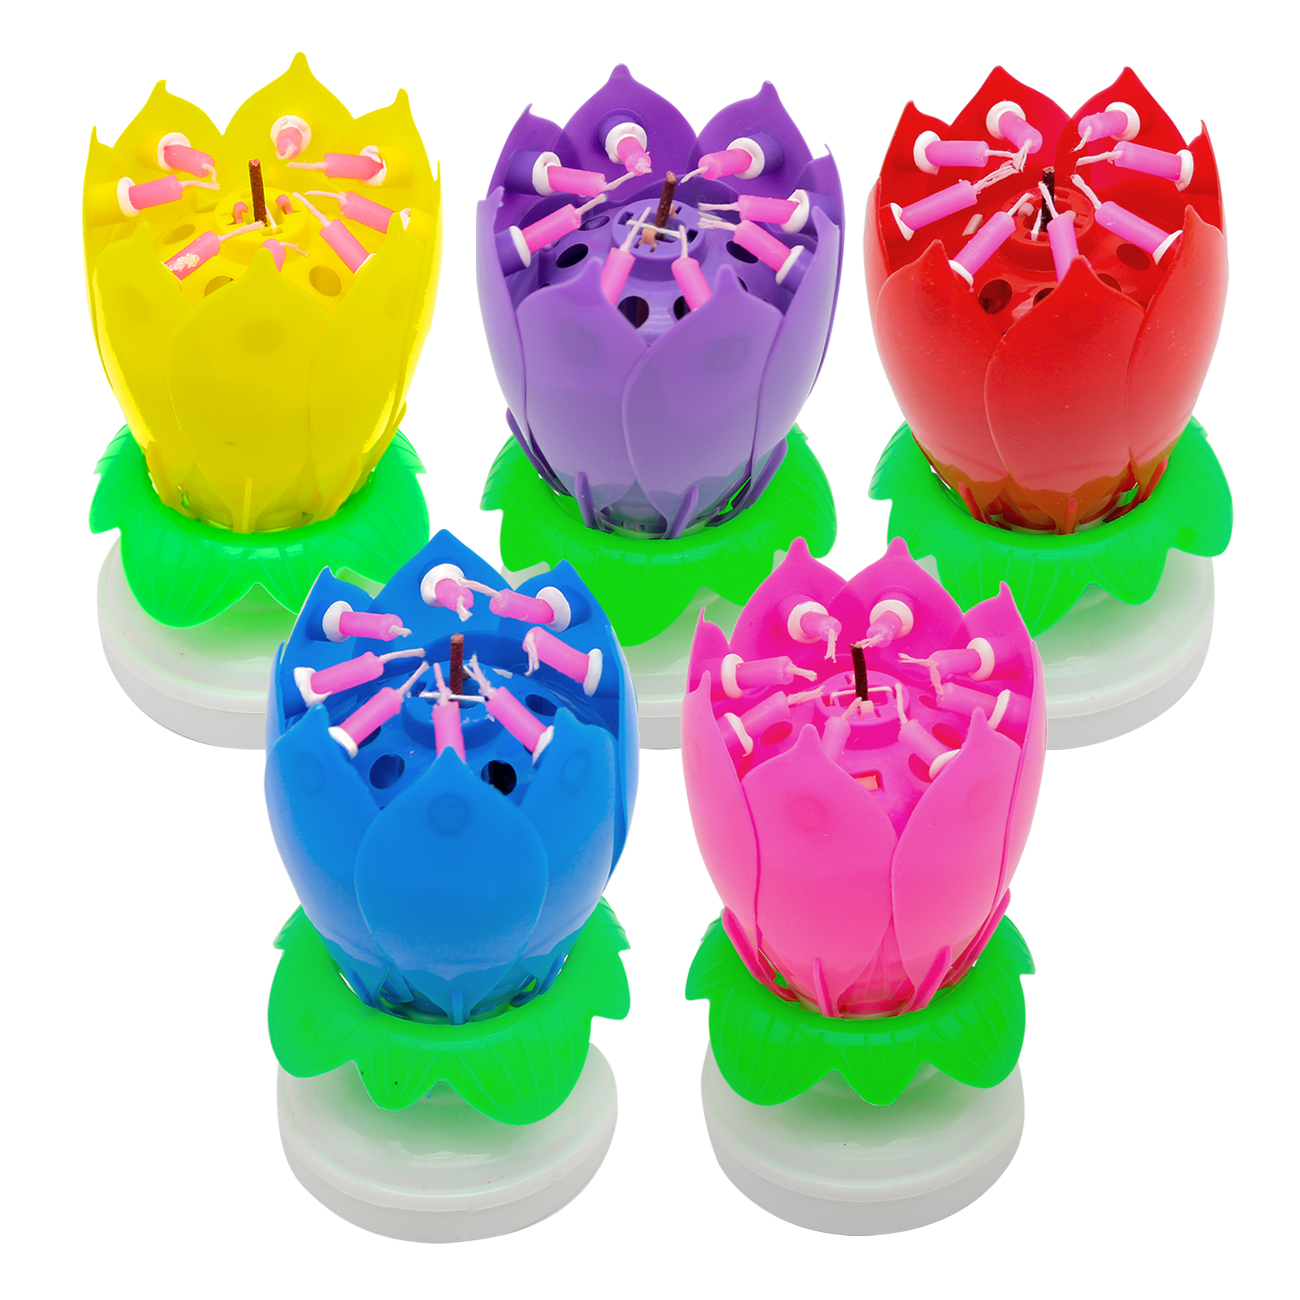 Details About 4x Music Party Surprised Birthday Candle Magic Lotus Flower Spin 8 Small Candles